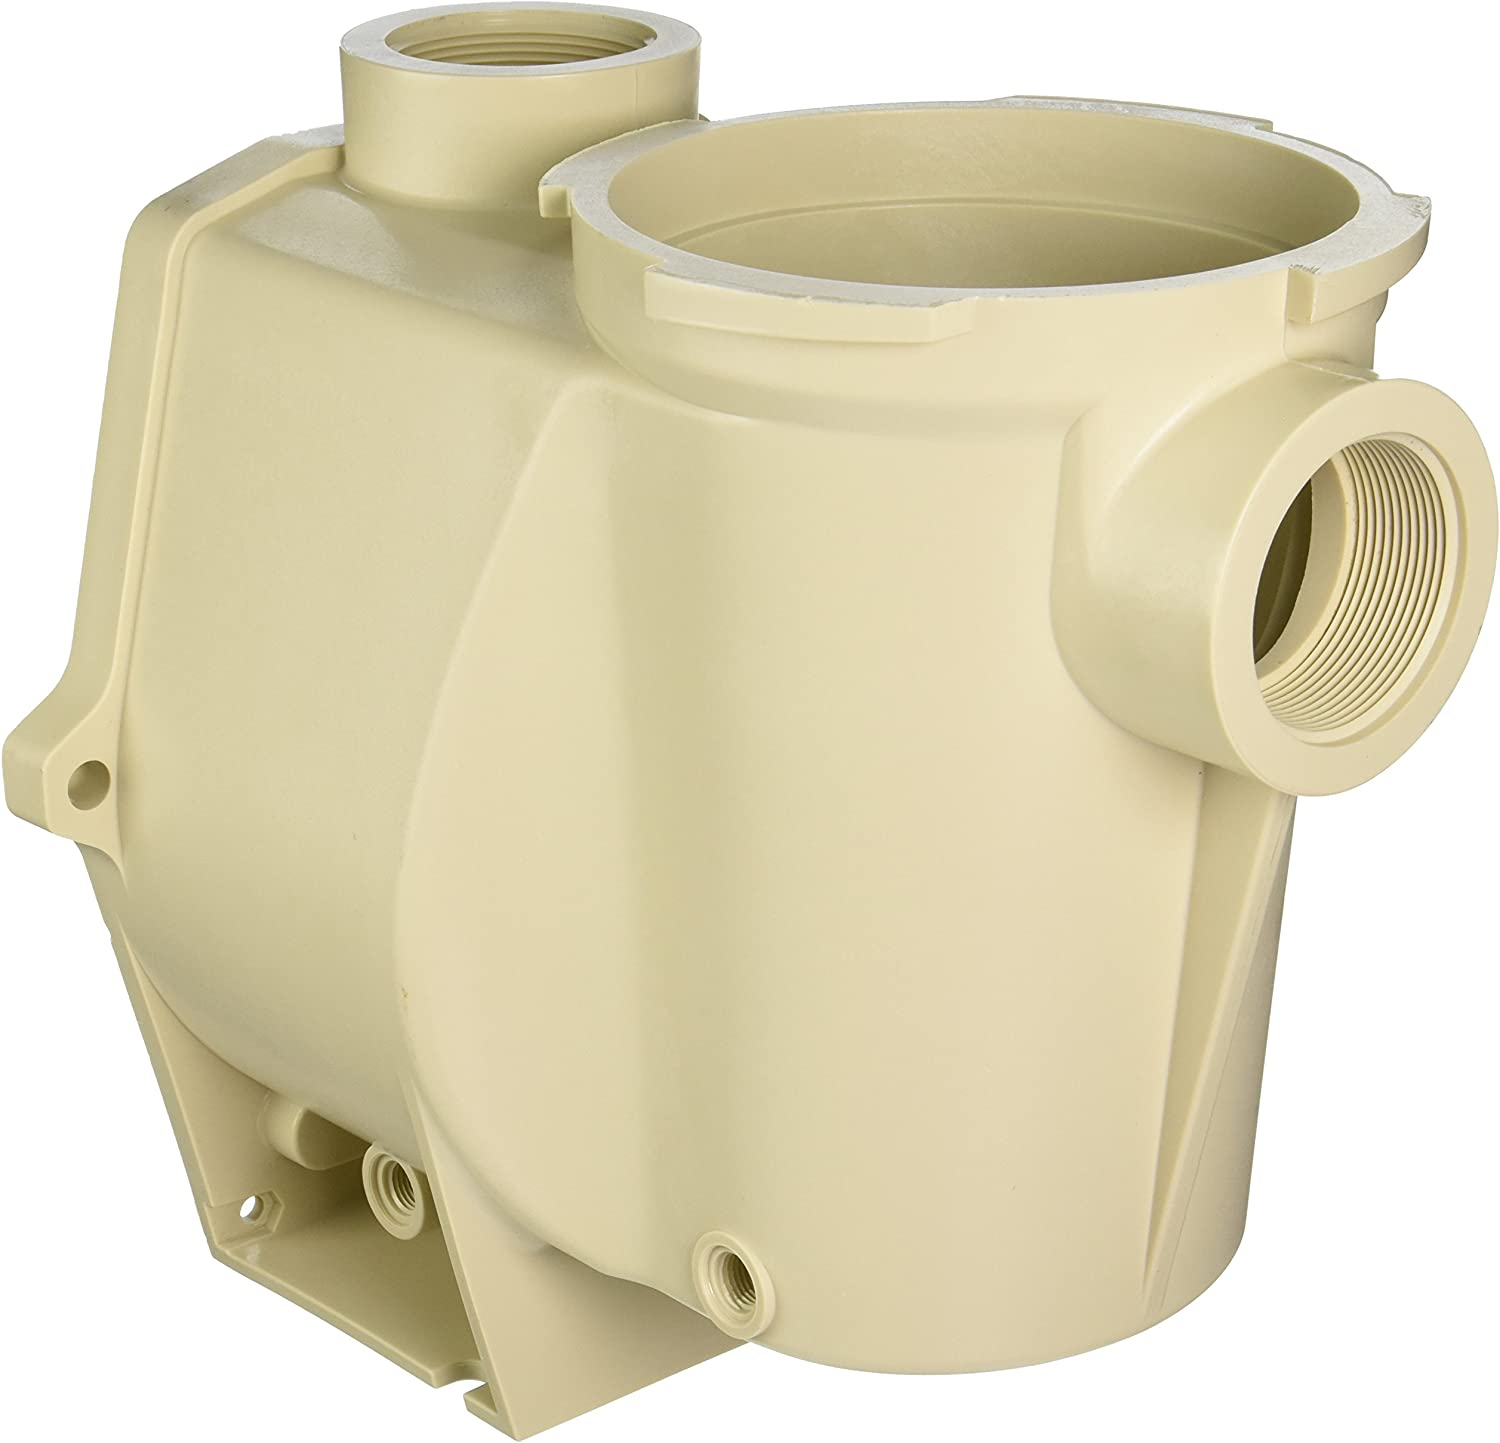 Pentair 350015 Almond Housing Replacement Inground Pool and Spa Pump